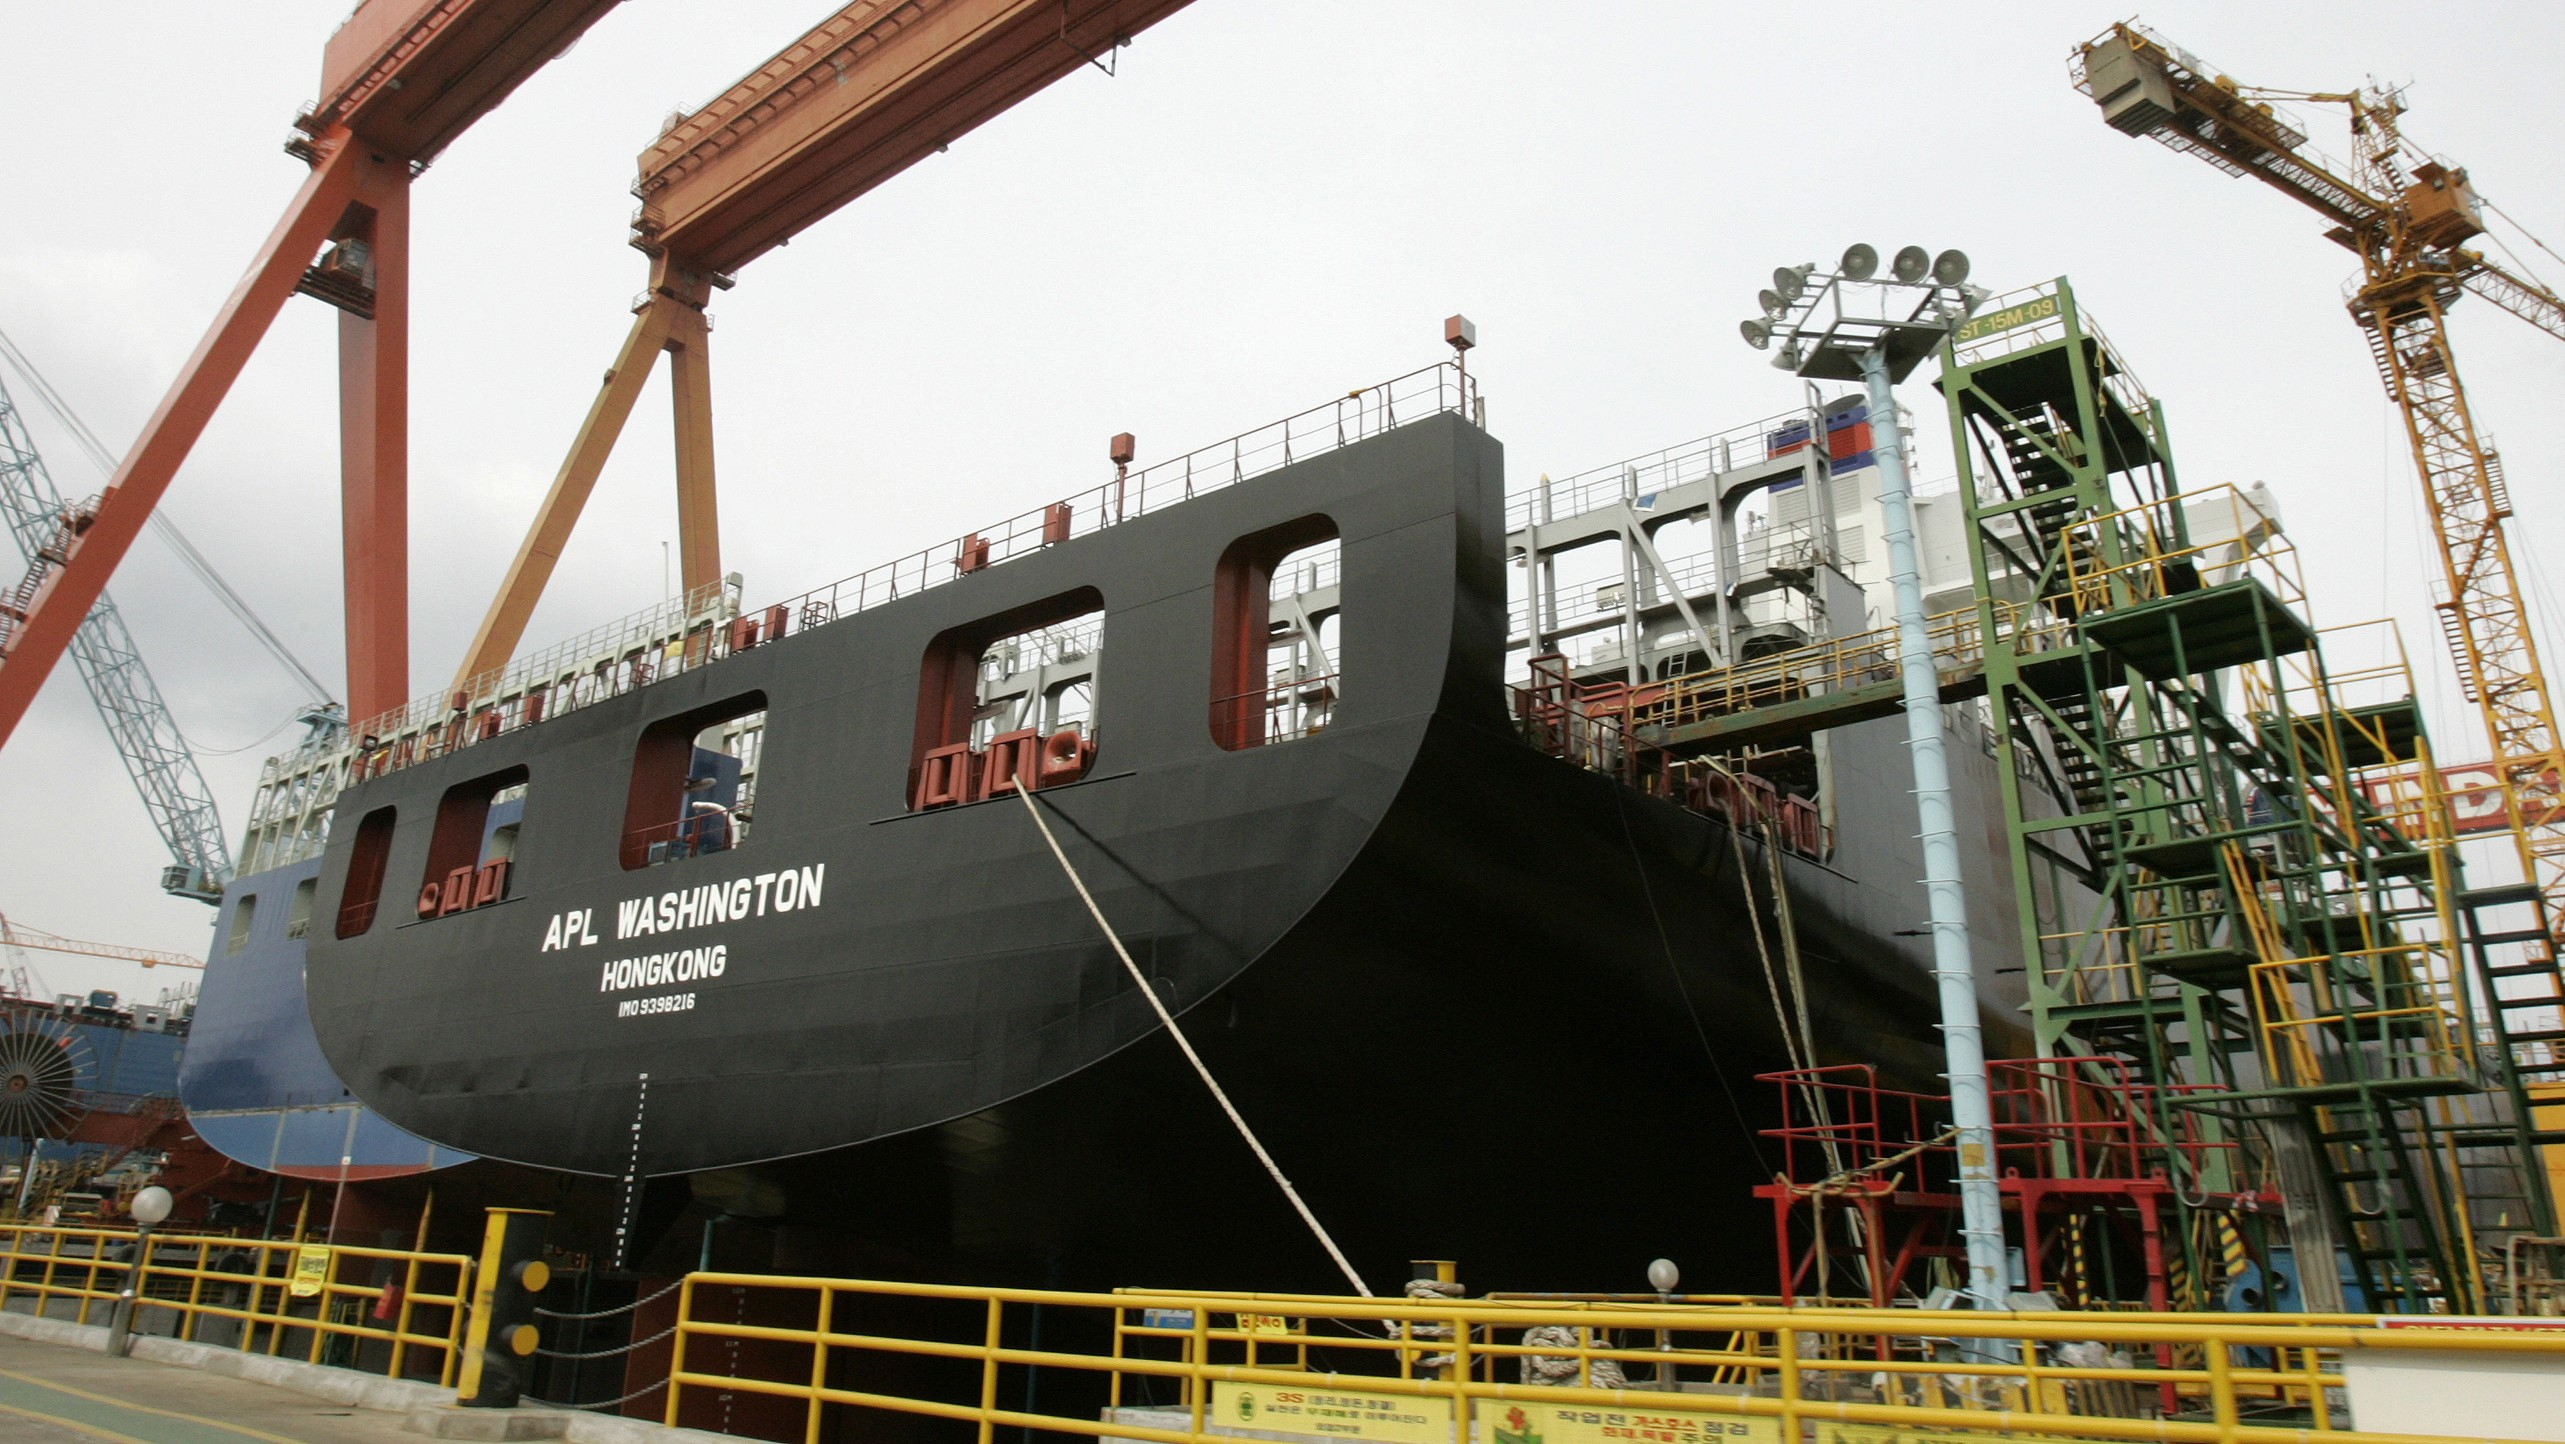 A cargo boat under construction is seen at a dockyard of Hyundai Heavy Industries in Ulsan, about 410 km (256 miles) southeast of Seoul, in this February 25, 2009 file photo. Signs that customers of South Korea's shipbuilders will delay or cancel orders is providing an additional threat to the beleaguered won, already under fire from concerns over the country's foreign currency liabilities. REUTERS/Jo Yong-Hak/Files (SOUTH KOREA TRANSPORT ENERGY POLITICS) - RTXCJ7E